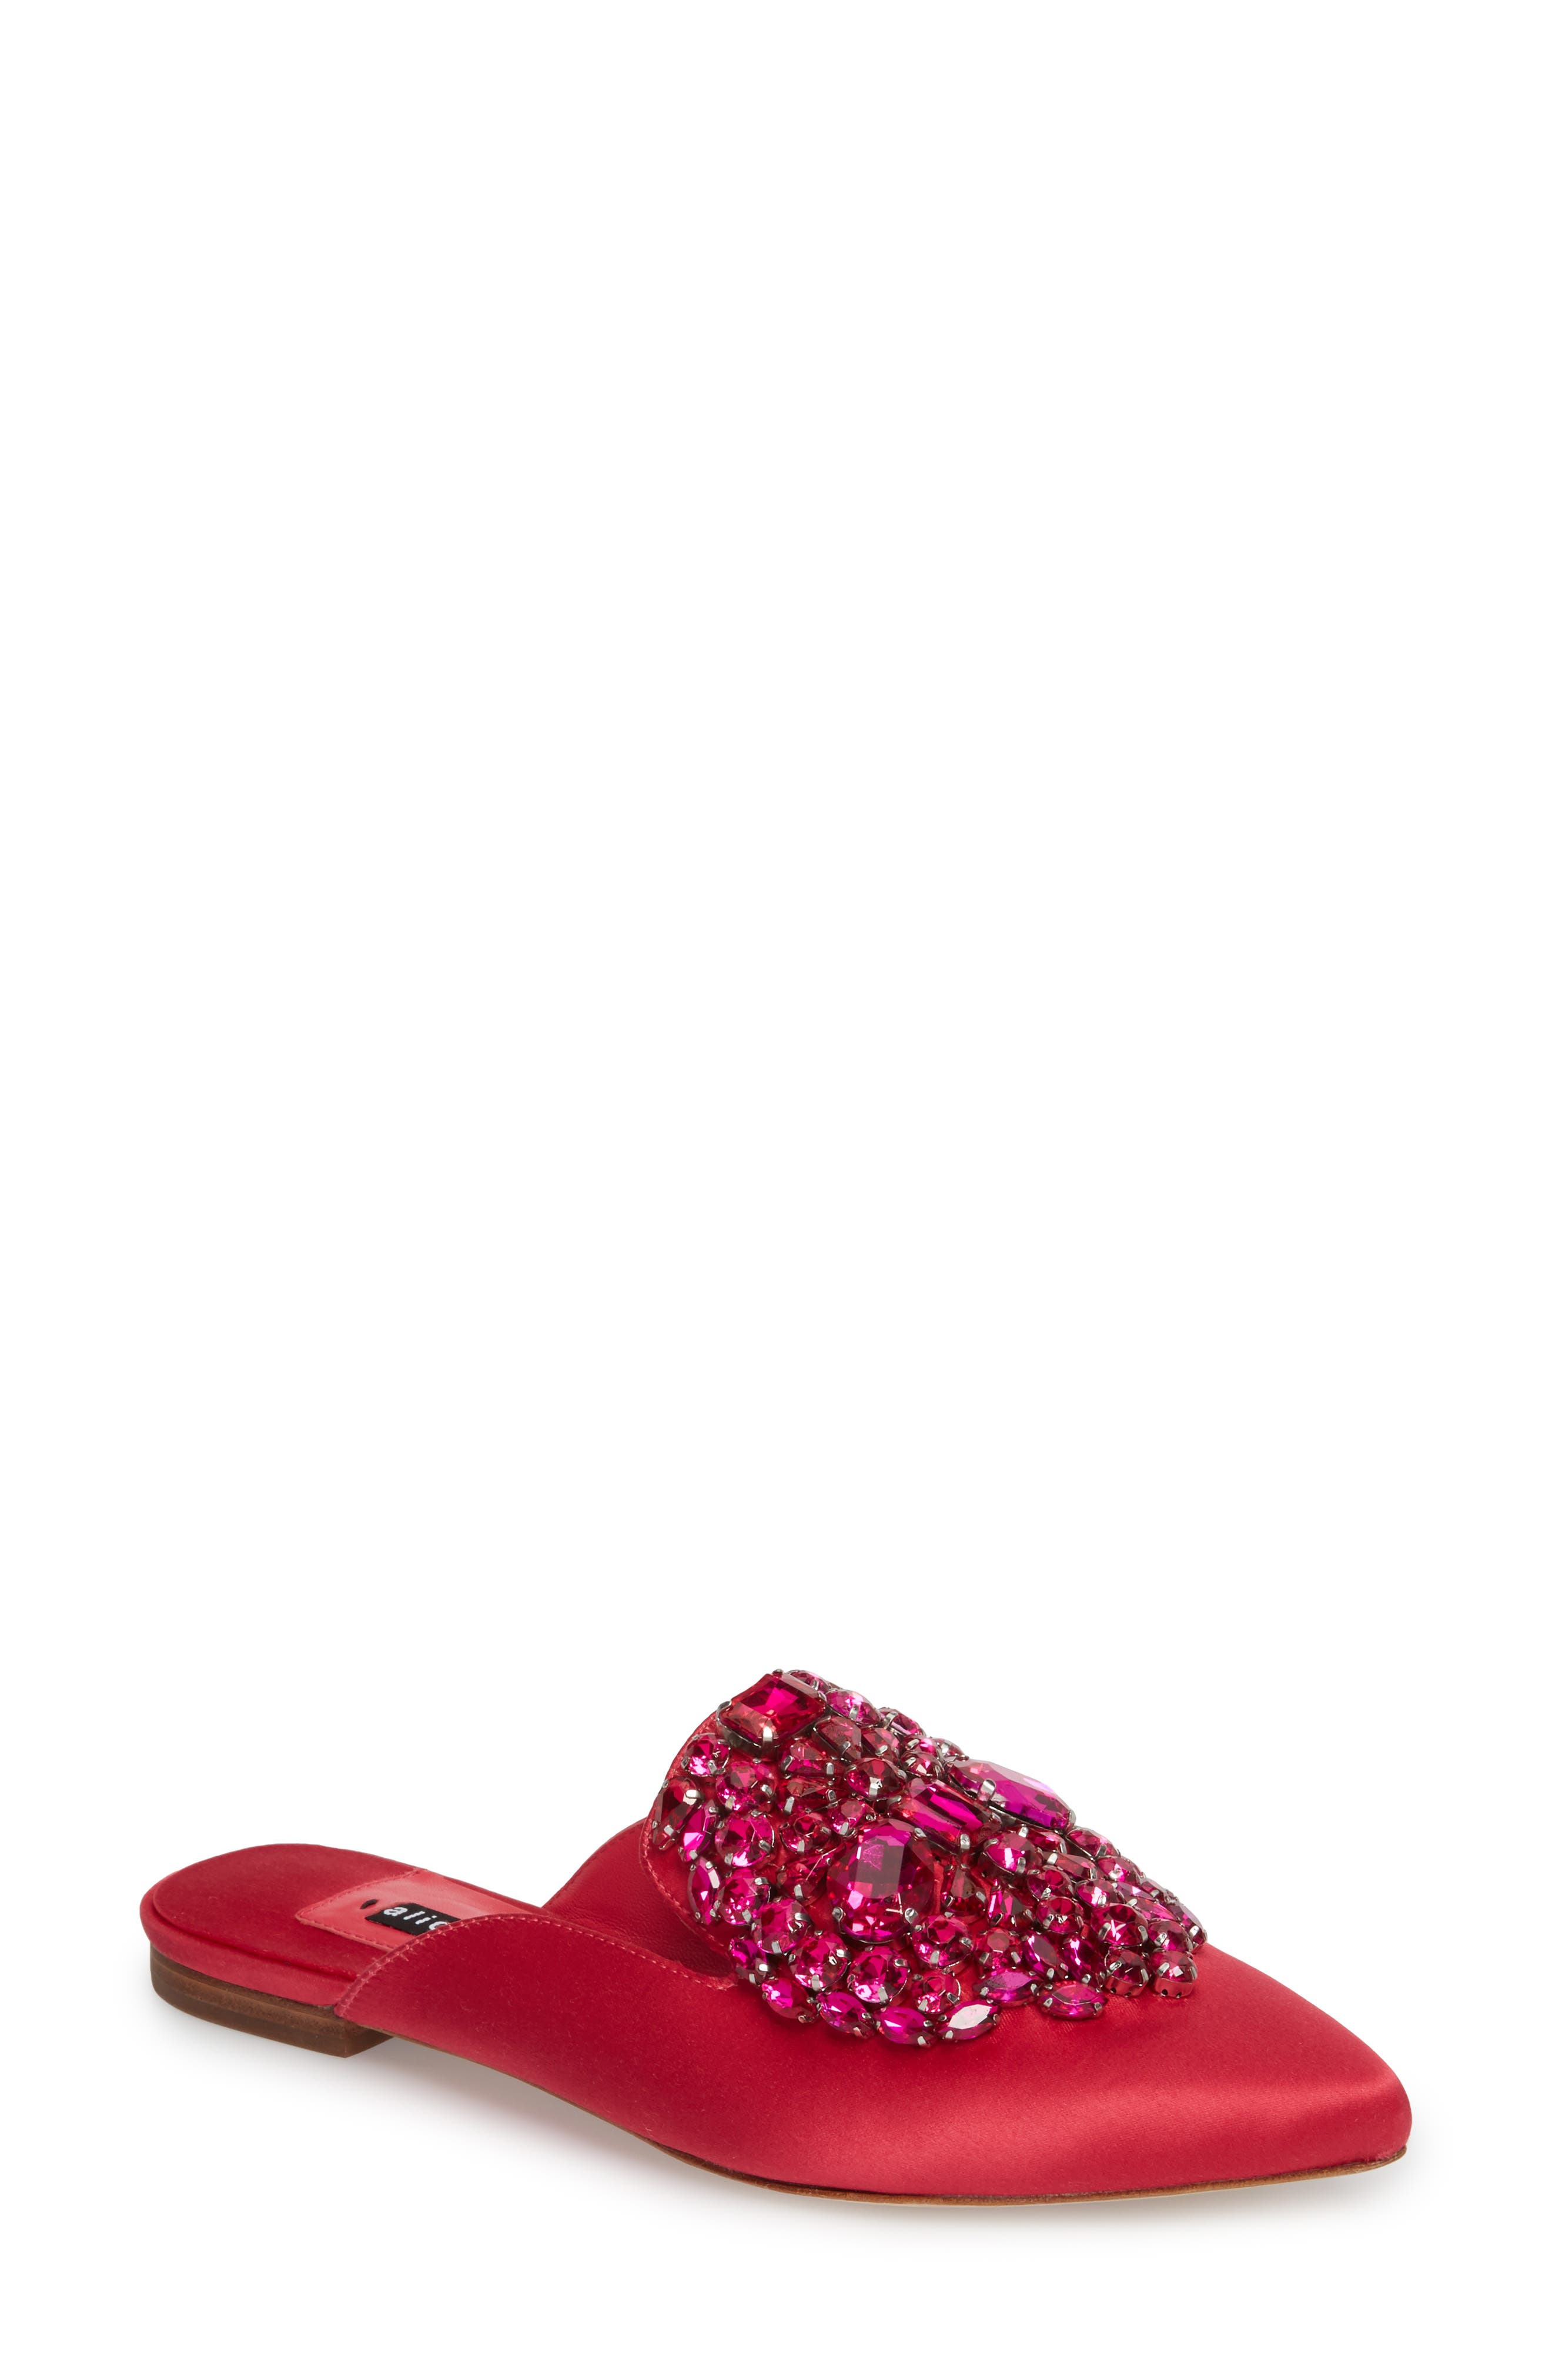 Lilly Crystal Embellished Loafer Mule,                             Main thumbnail 1, color,                             650